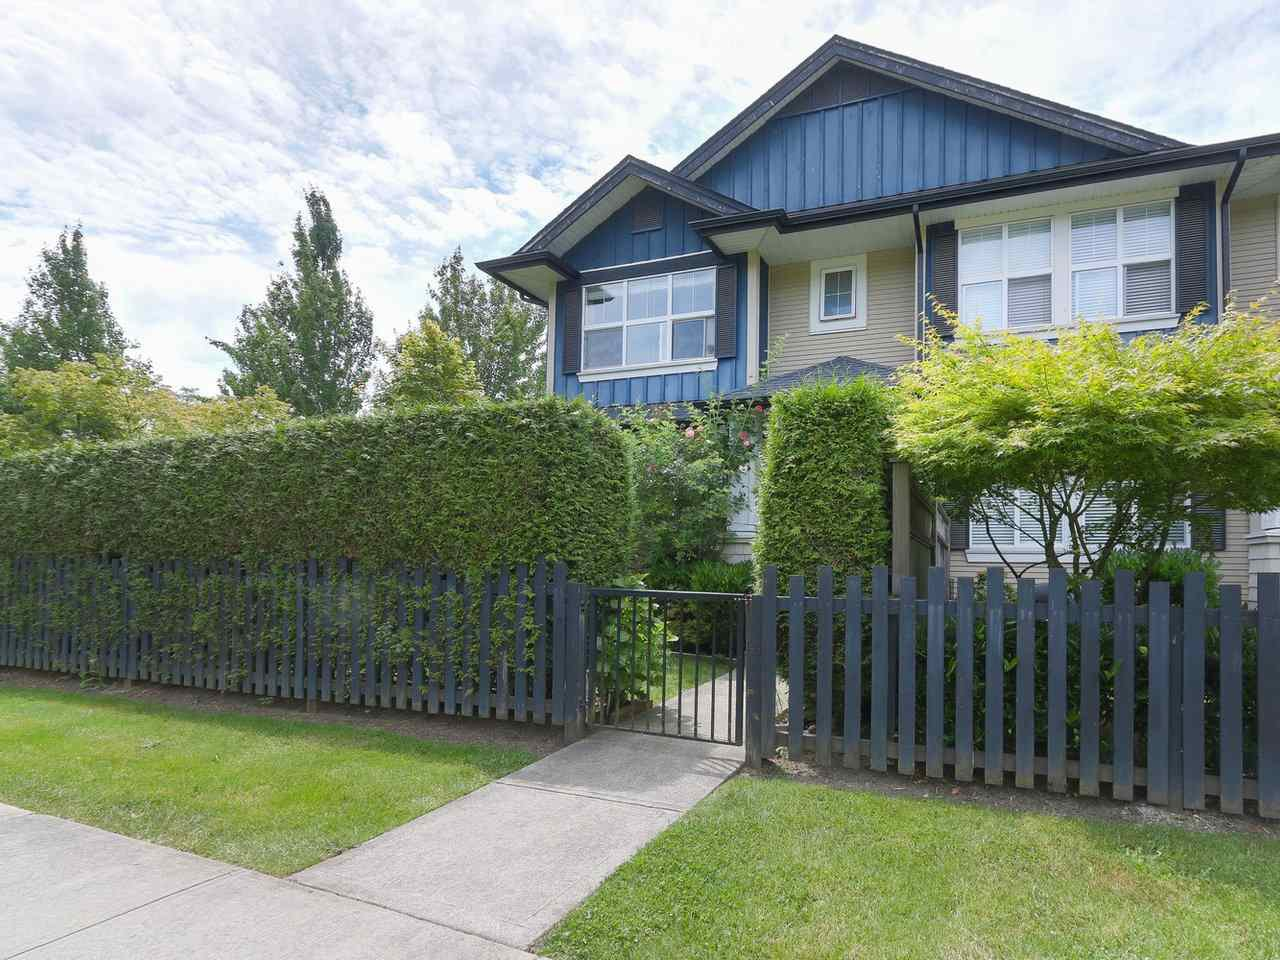 """Main Photo: 1 18199 70 Avenue in Surrey: Cloverdale BC Townhouse for sale in """"AUGUSTA"""" (Cloverdale)  : MLS®# R2418481"""